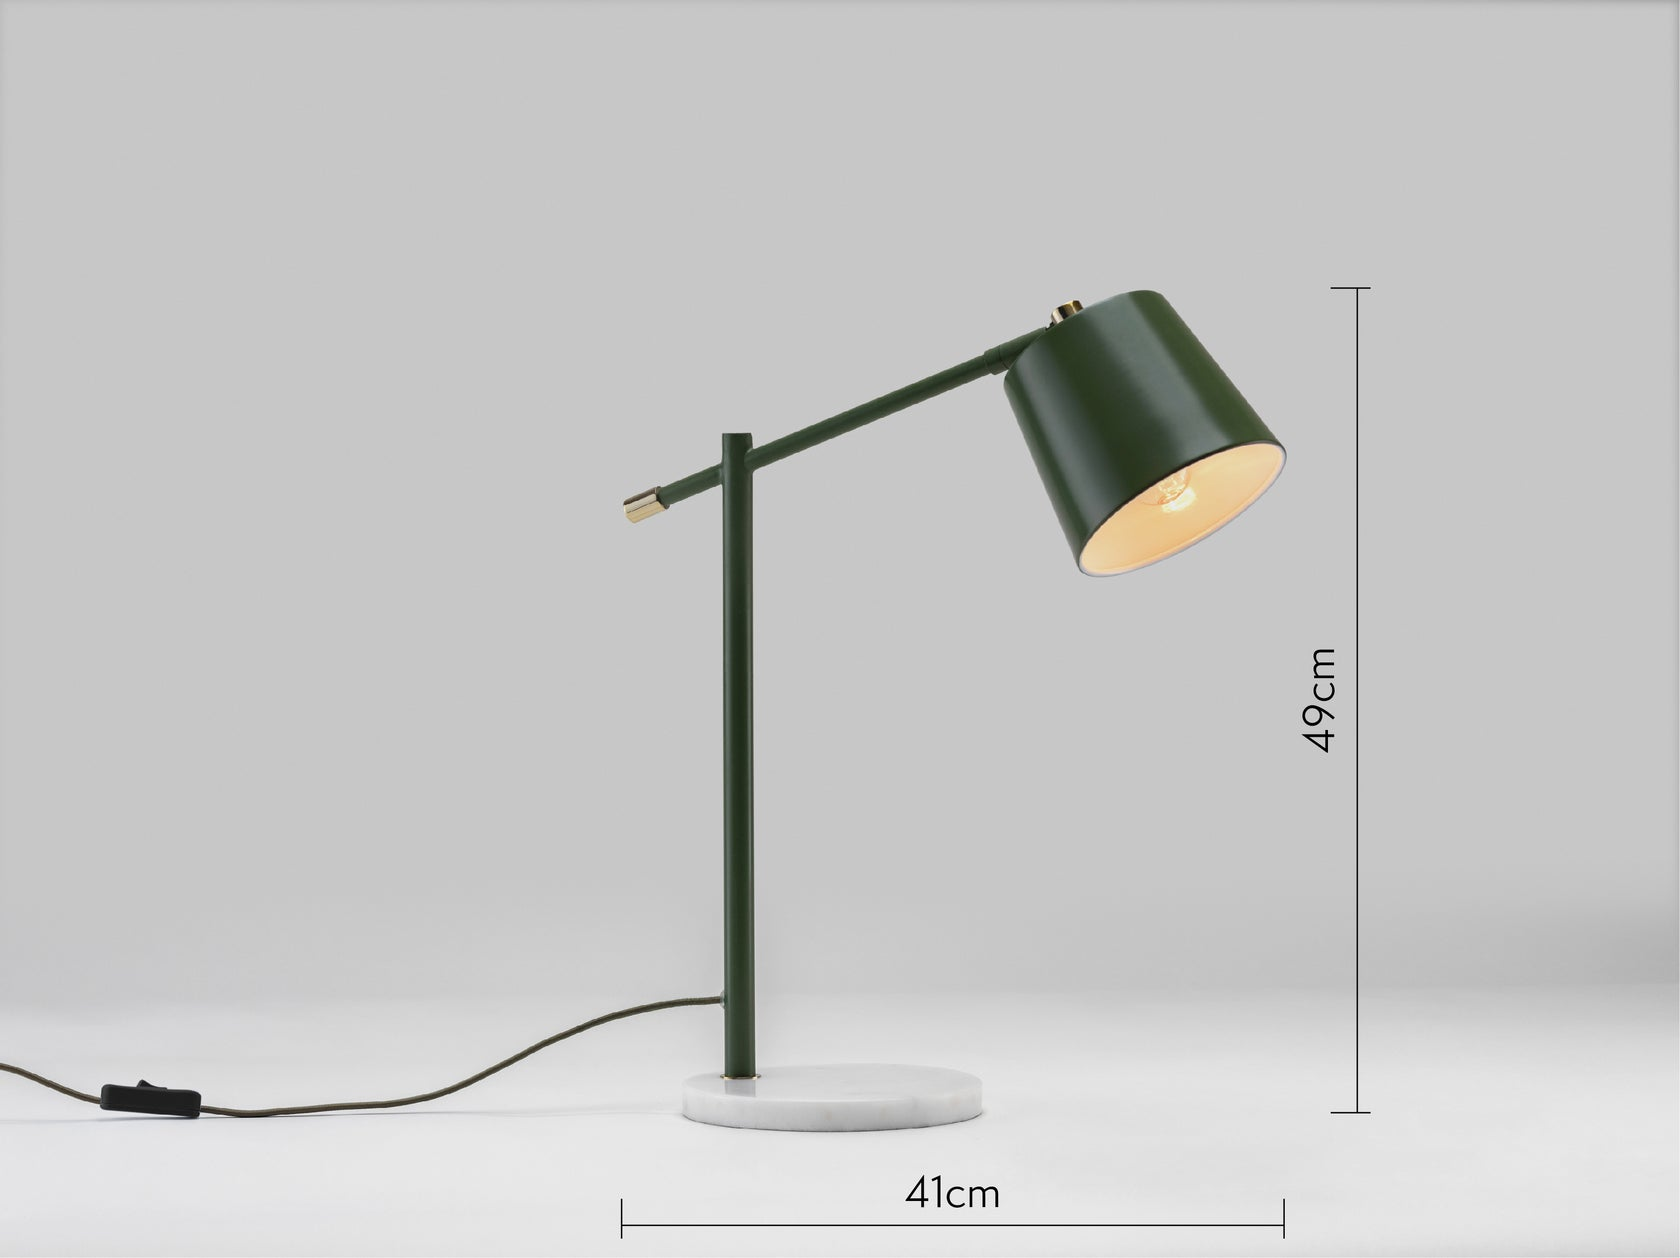 Task desk lamp olive | dimension | houseof.com